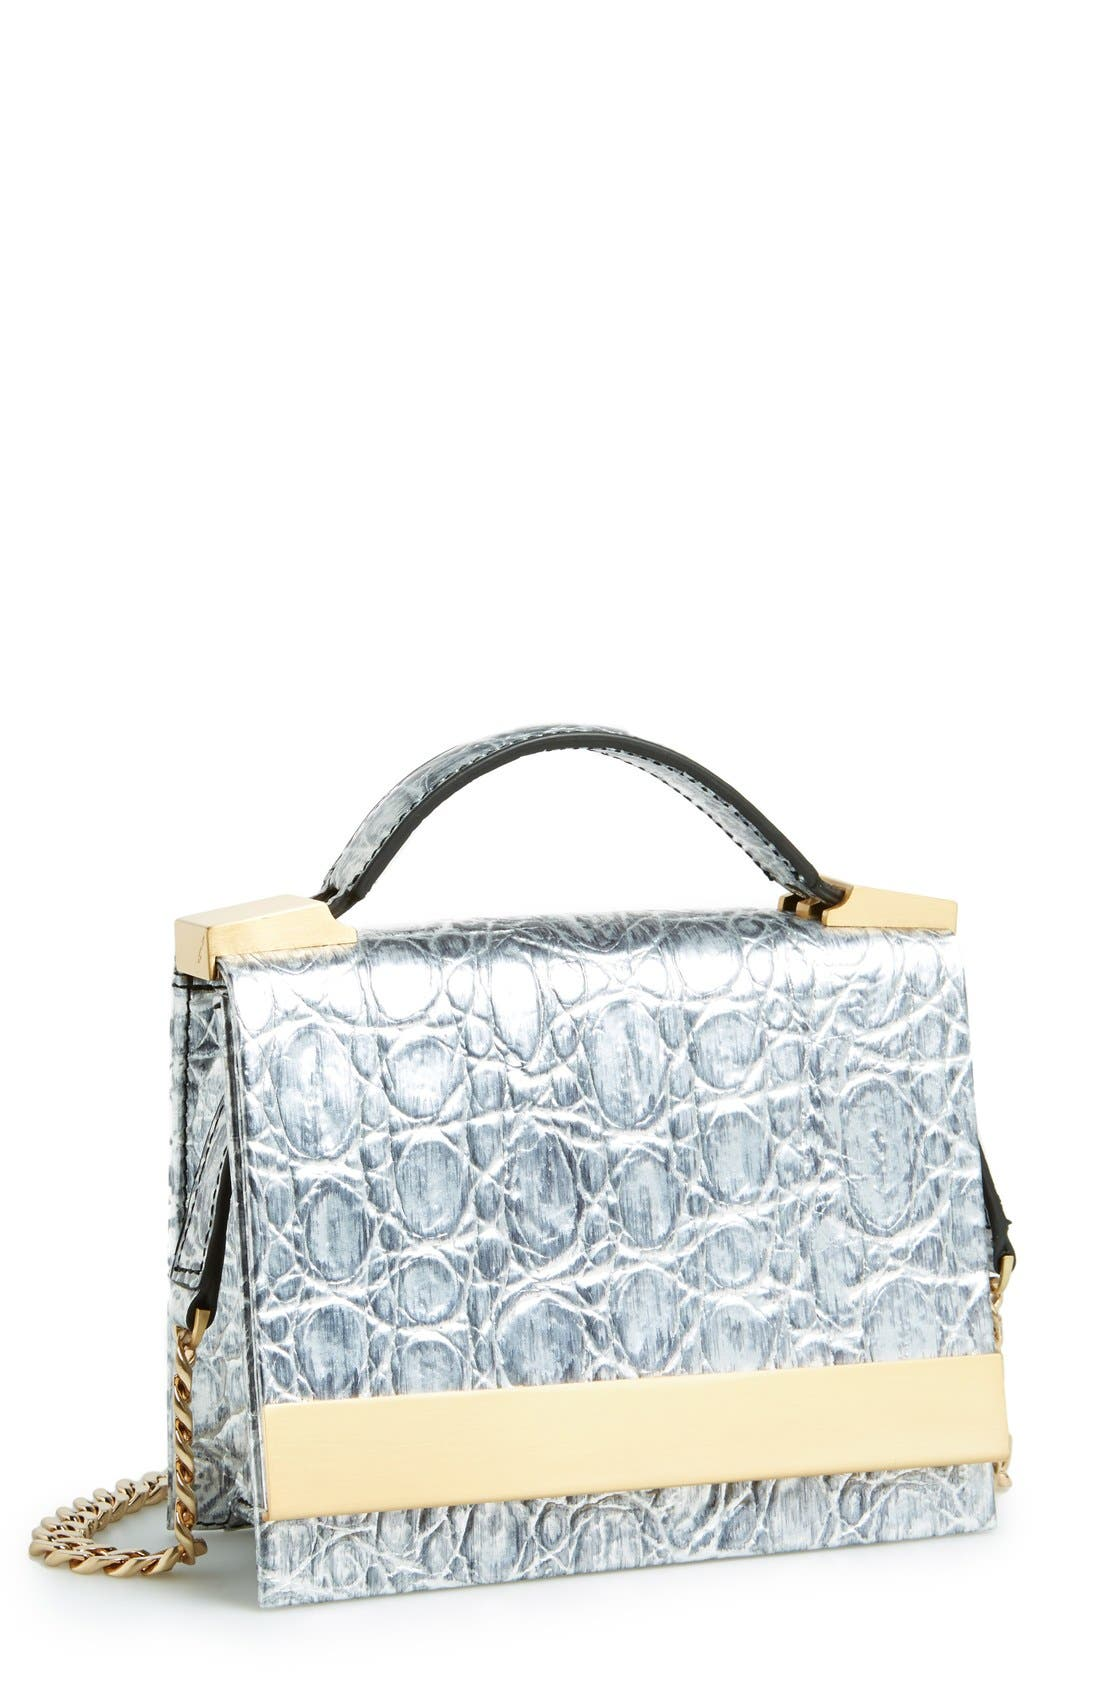 Alternate Image 1 Selected - B Brian Atwood 'Ava' Metallic Leather Top Handle Convertible Clutch